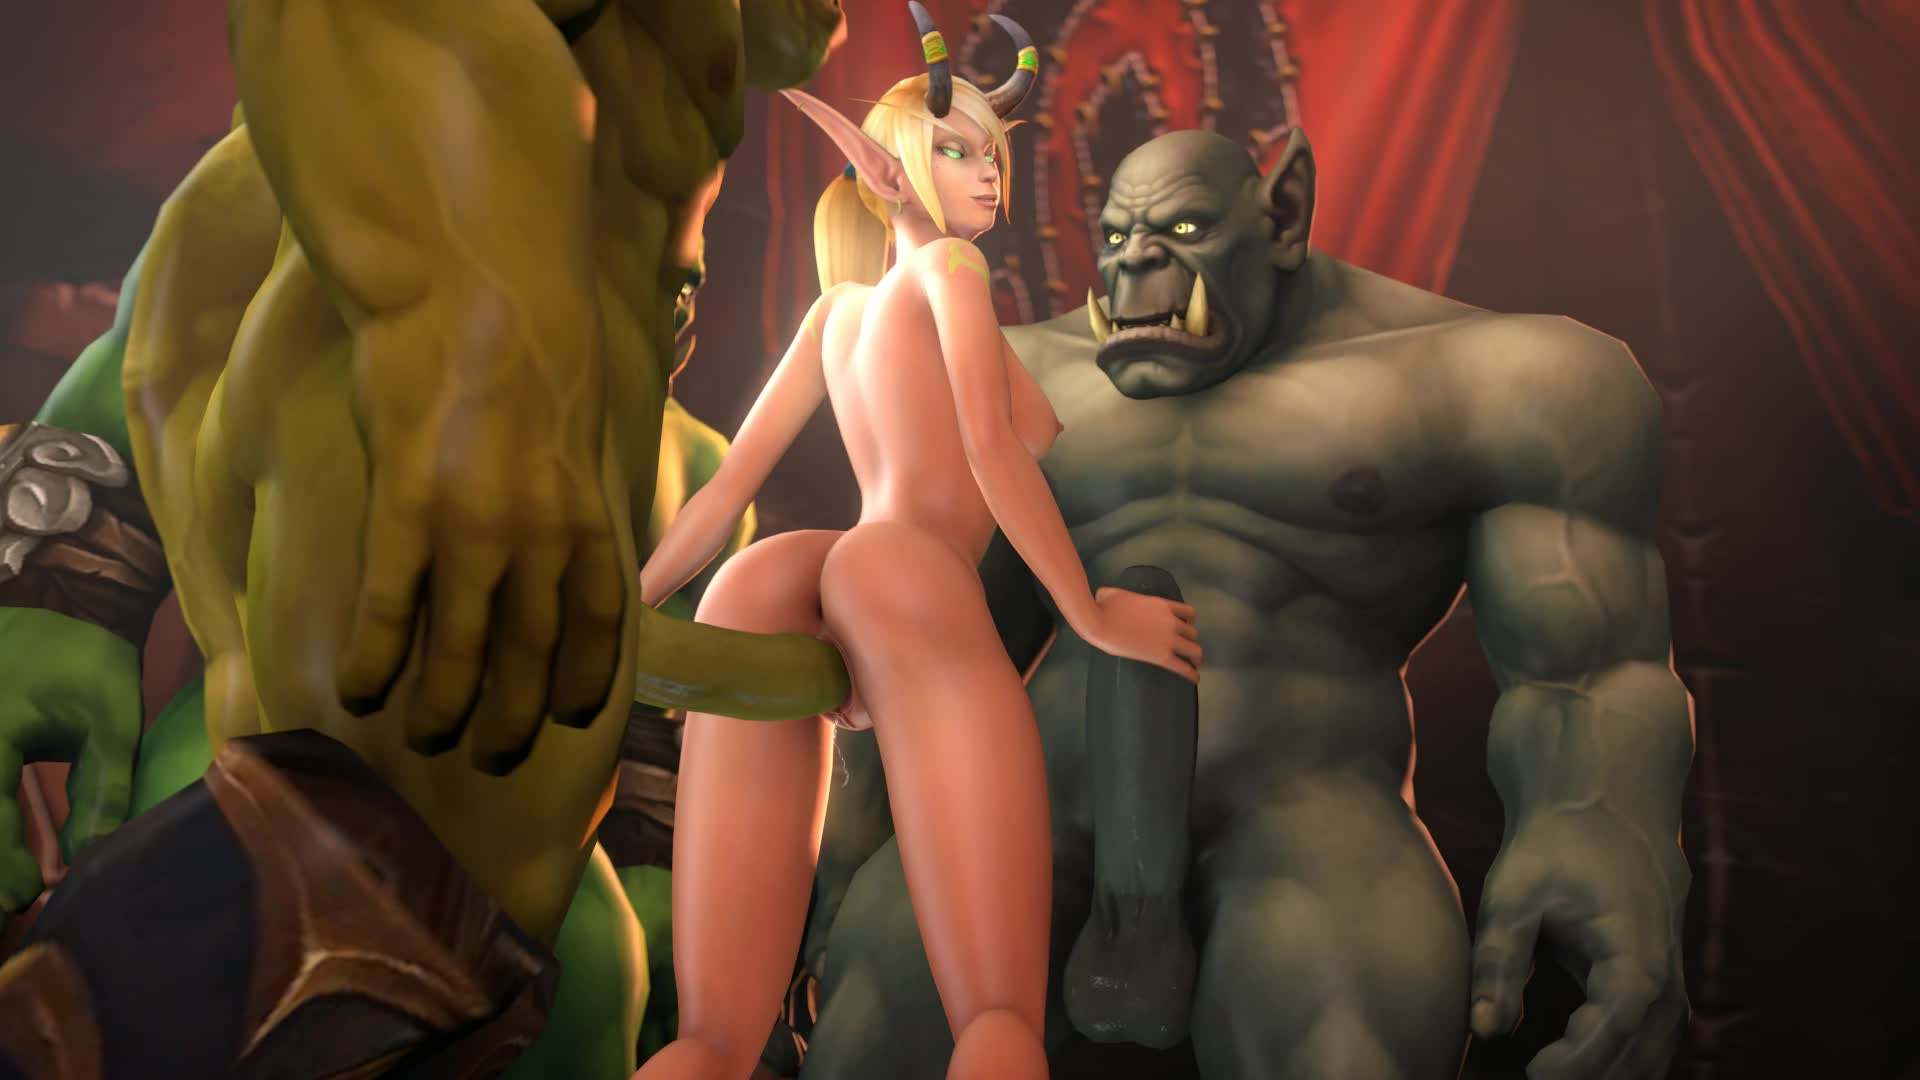 3d World of Warcraft porn 2 0 adult movies